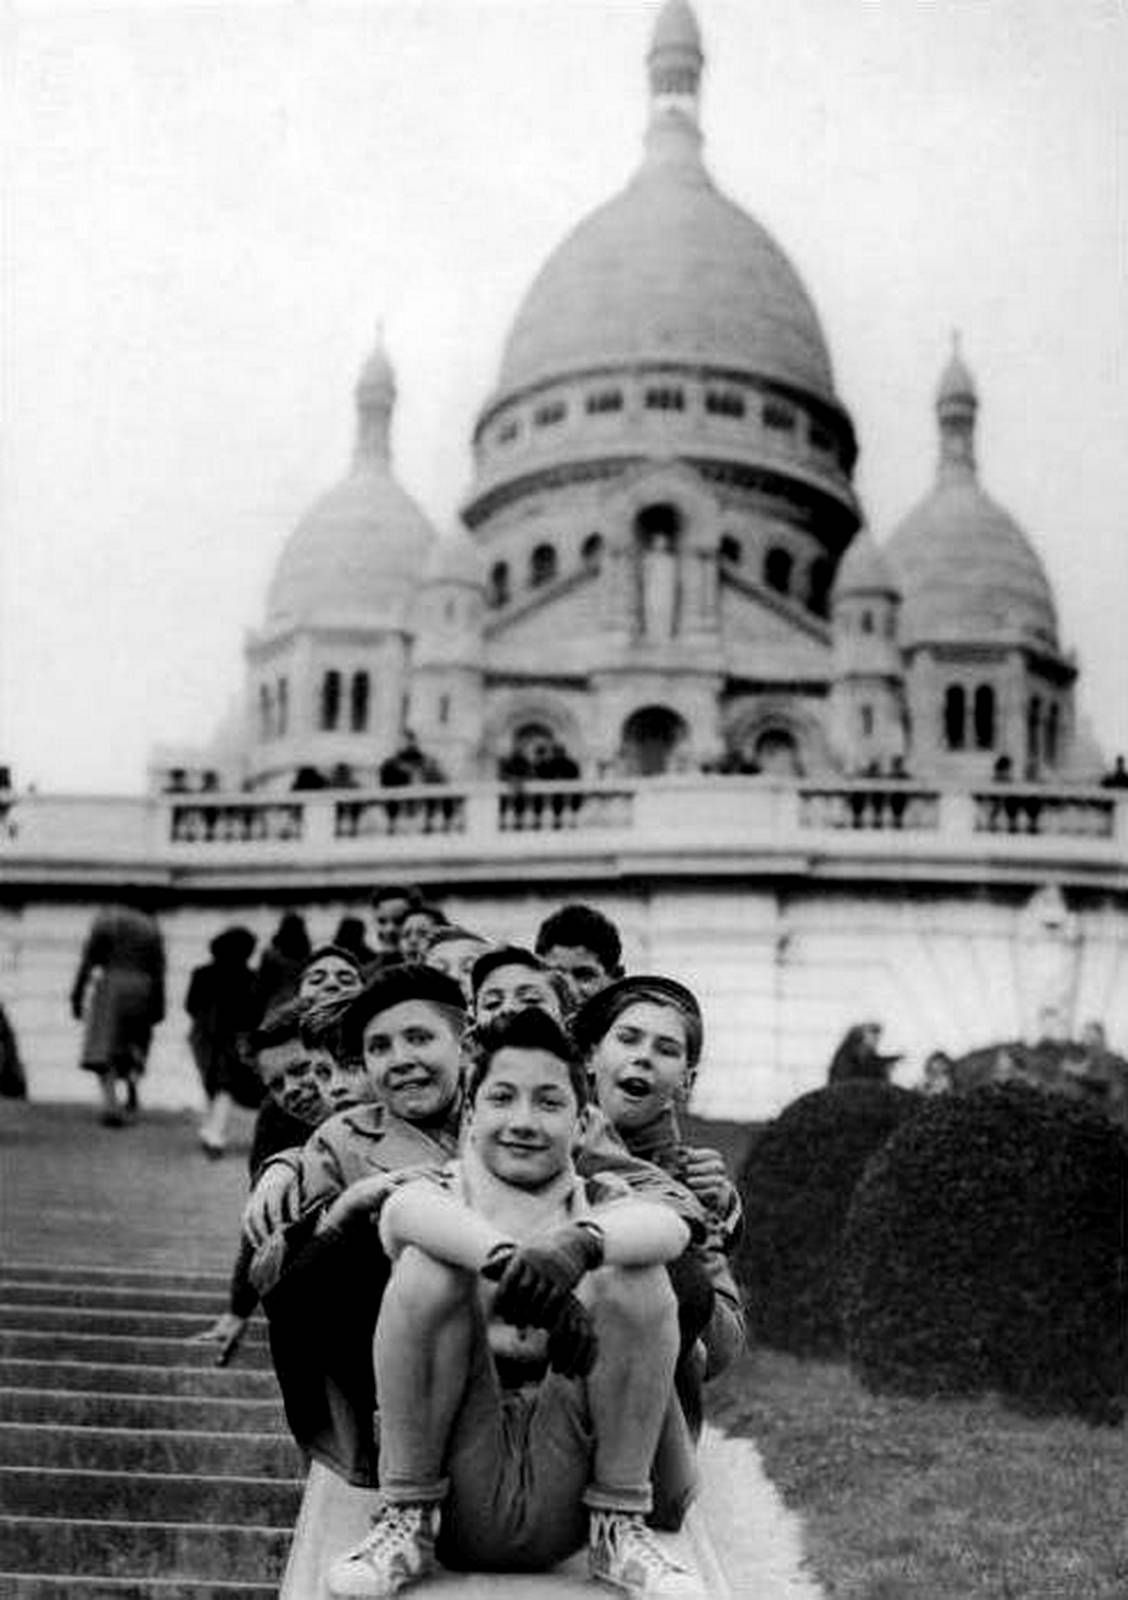 Sacré-Coeur Paris circa 1950 Agence Keystone | Old Time | Pinterest